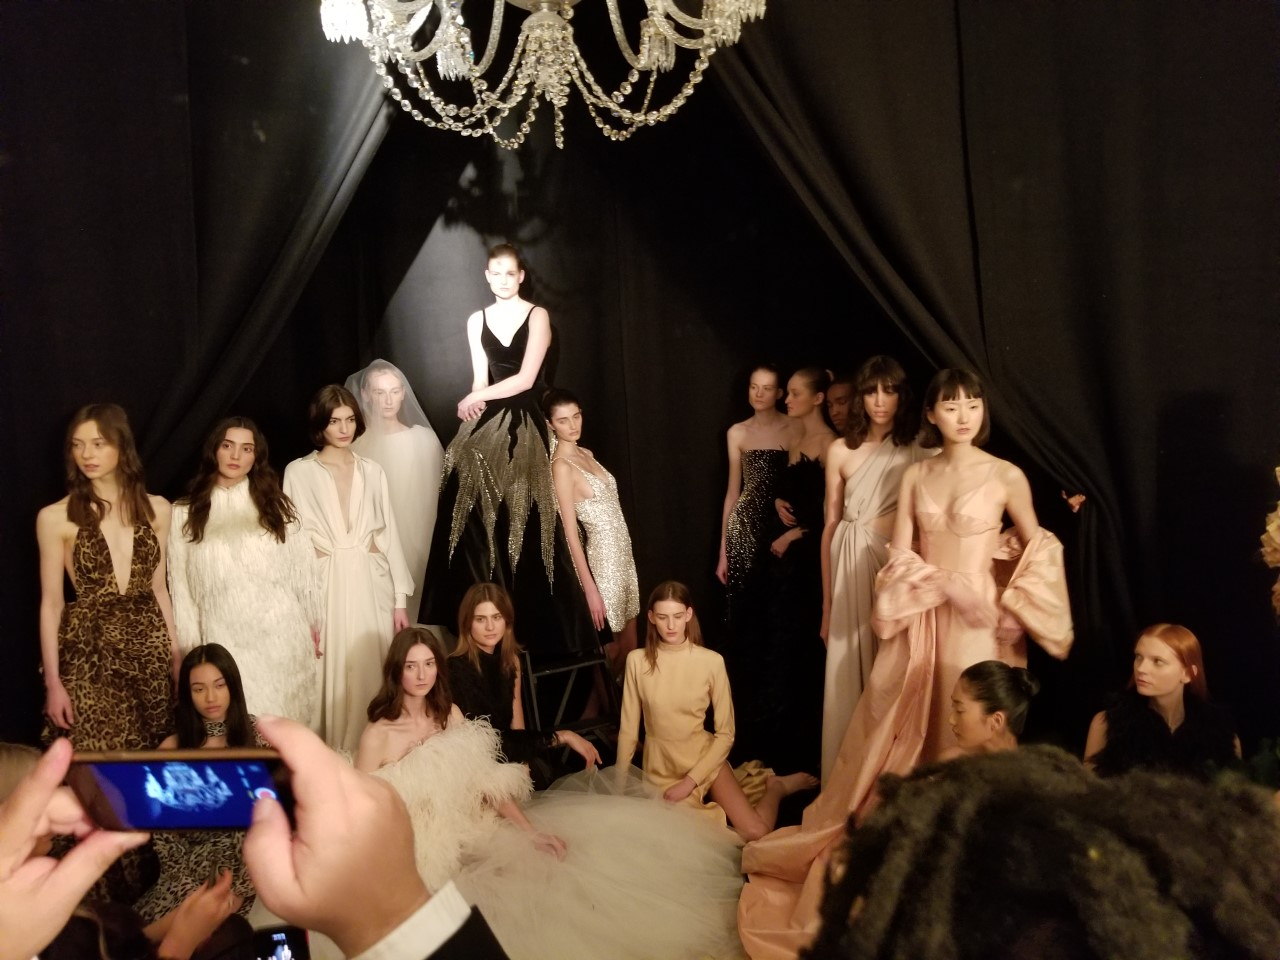 Ahmed alkhyeli aw19 collection (2)